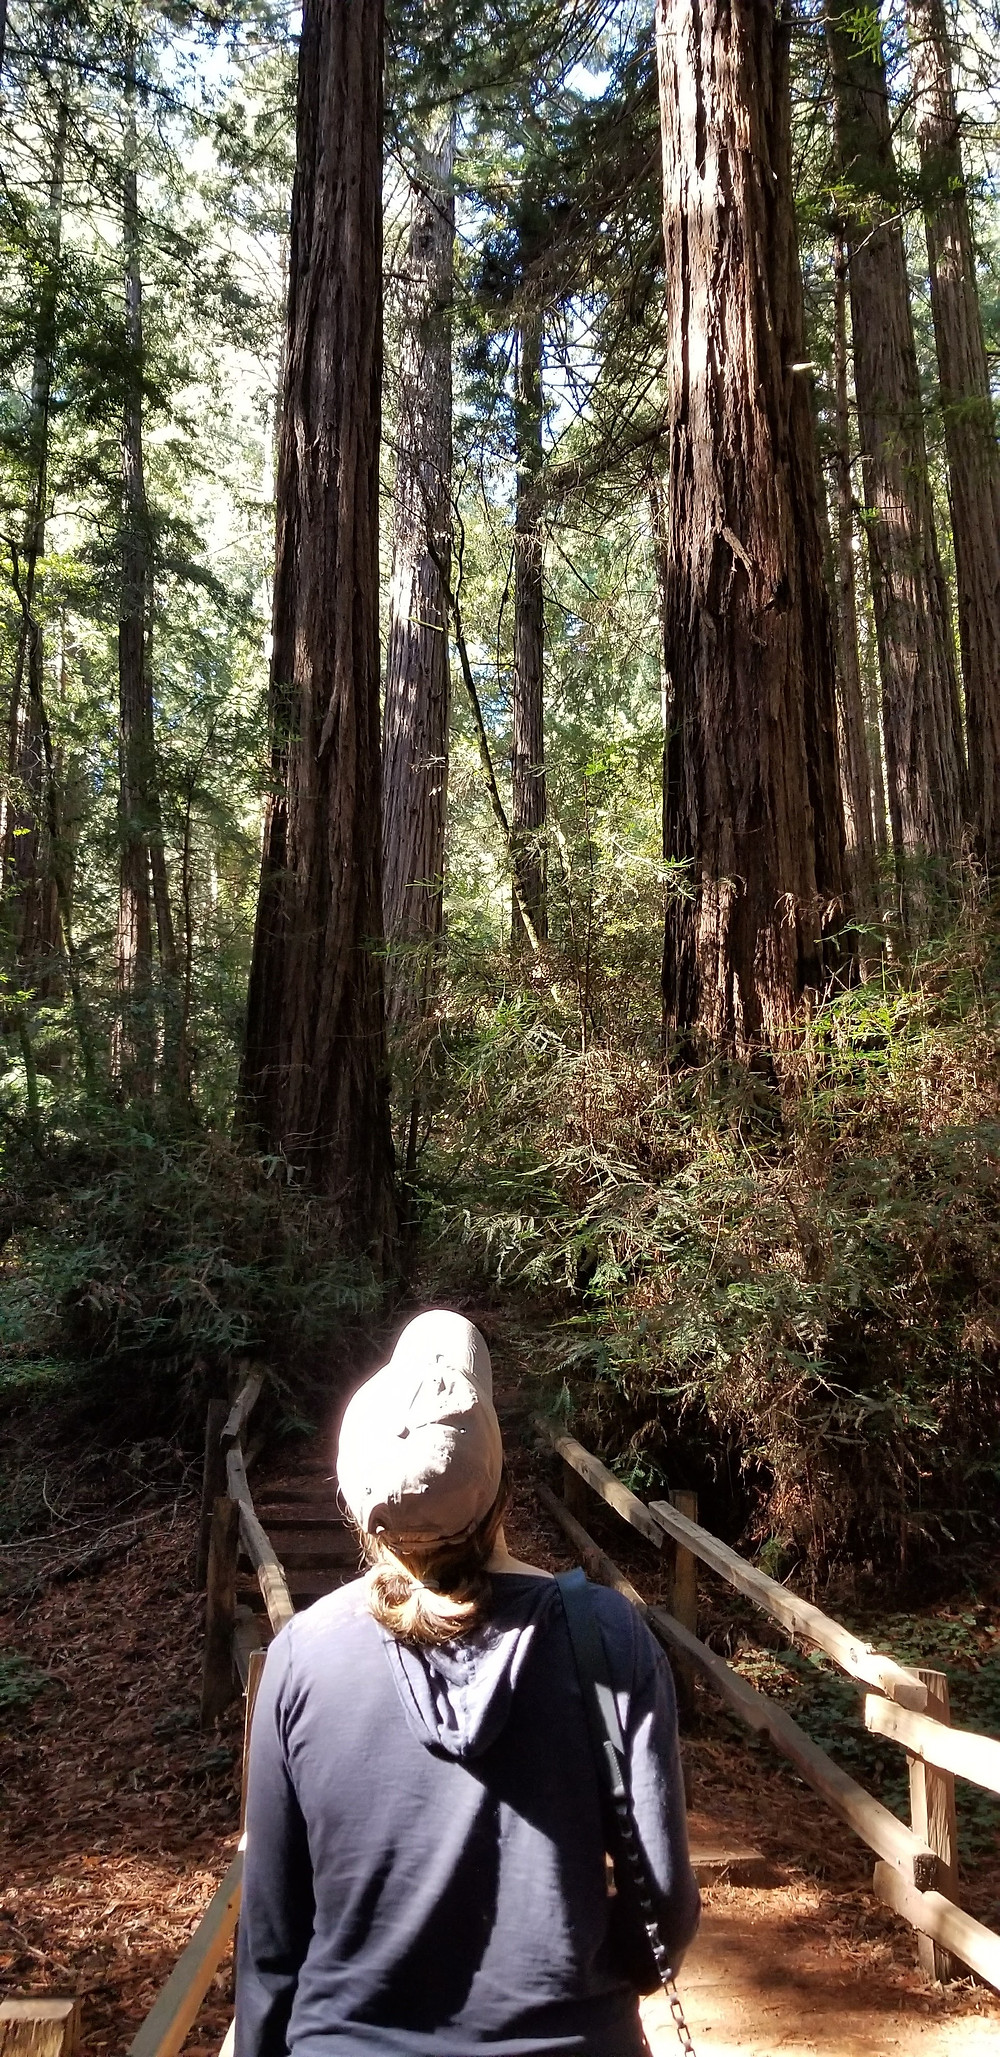 Digital Marketing Trends 2018 and Seeing through the forest